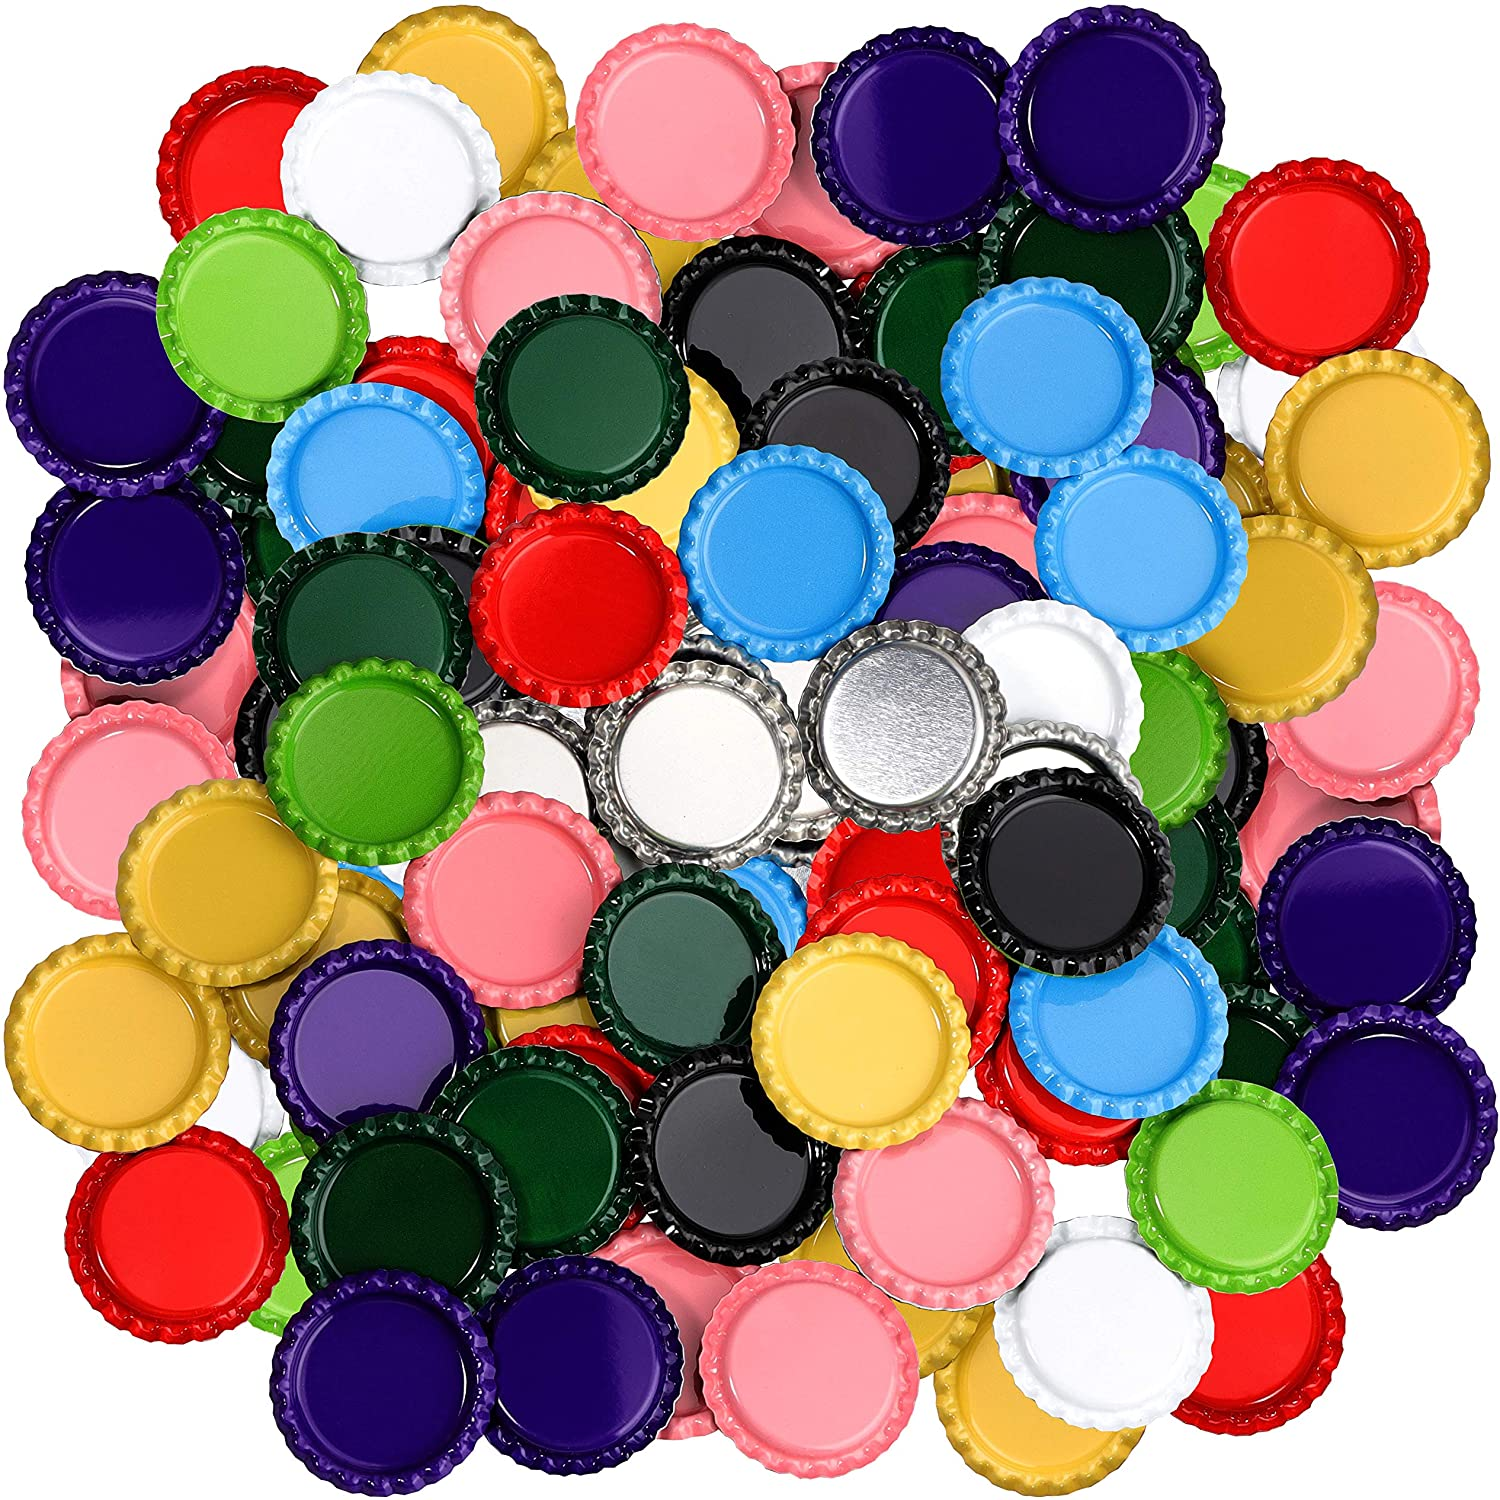 RUTICH 100 PCS Flat Decorative Bottle Cap Craft Bottle Stickers Double Sideds Printed for Hair Bows, DIY Pendants or Craft ScraPbooks,Mixed Colors(10 Colors)